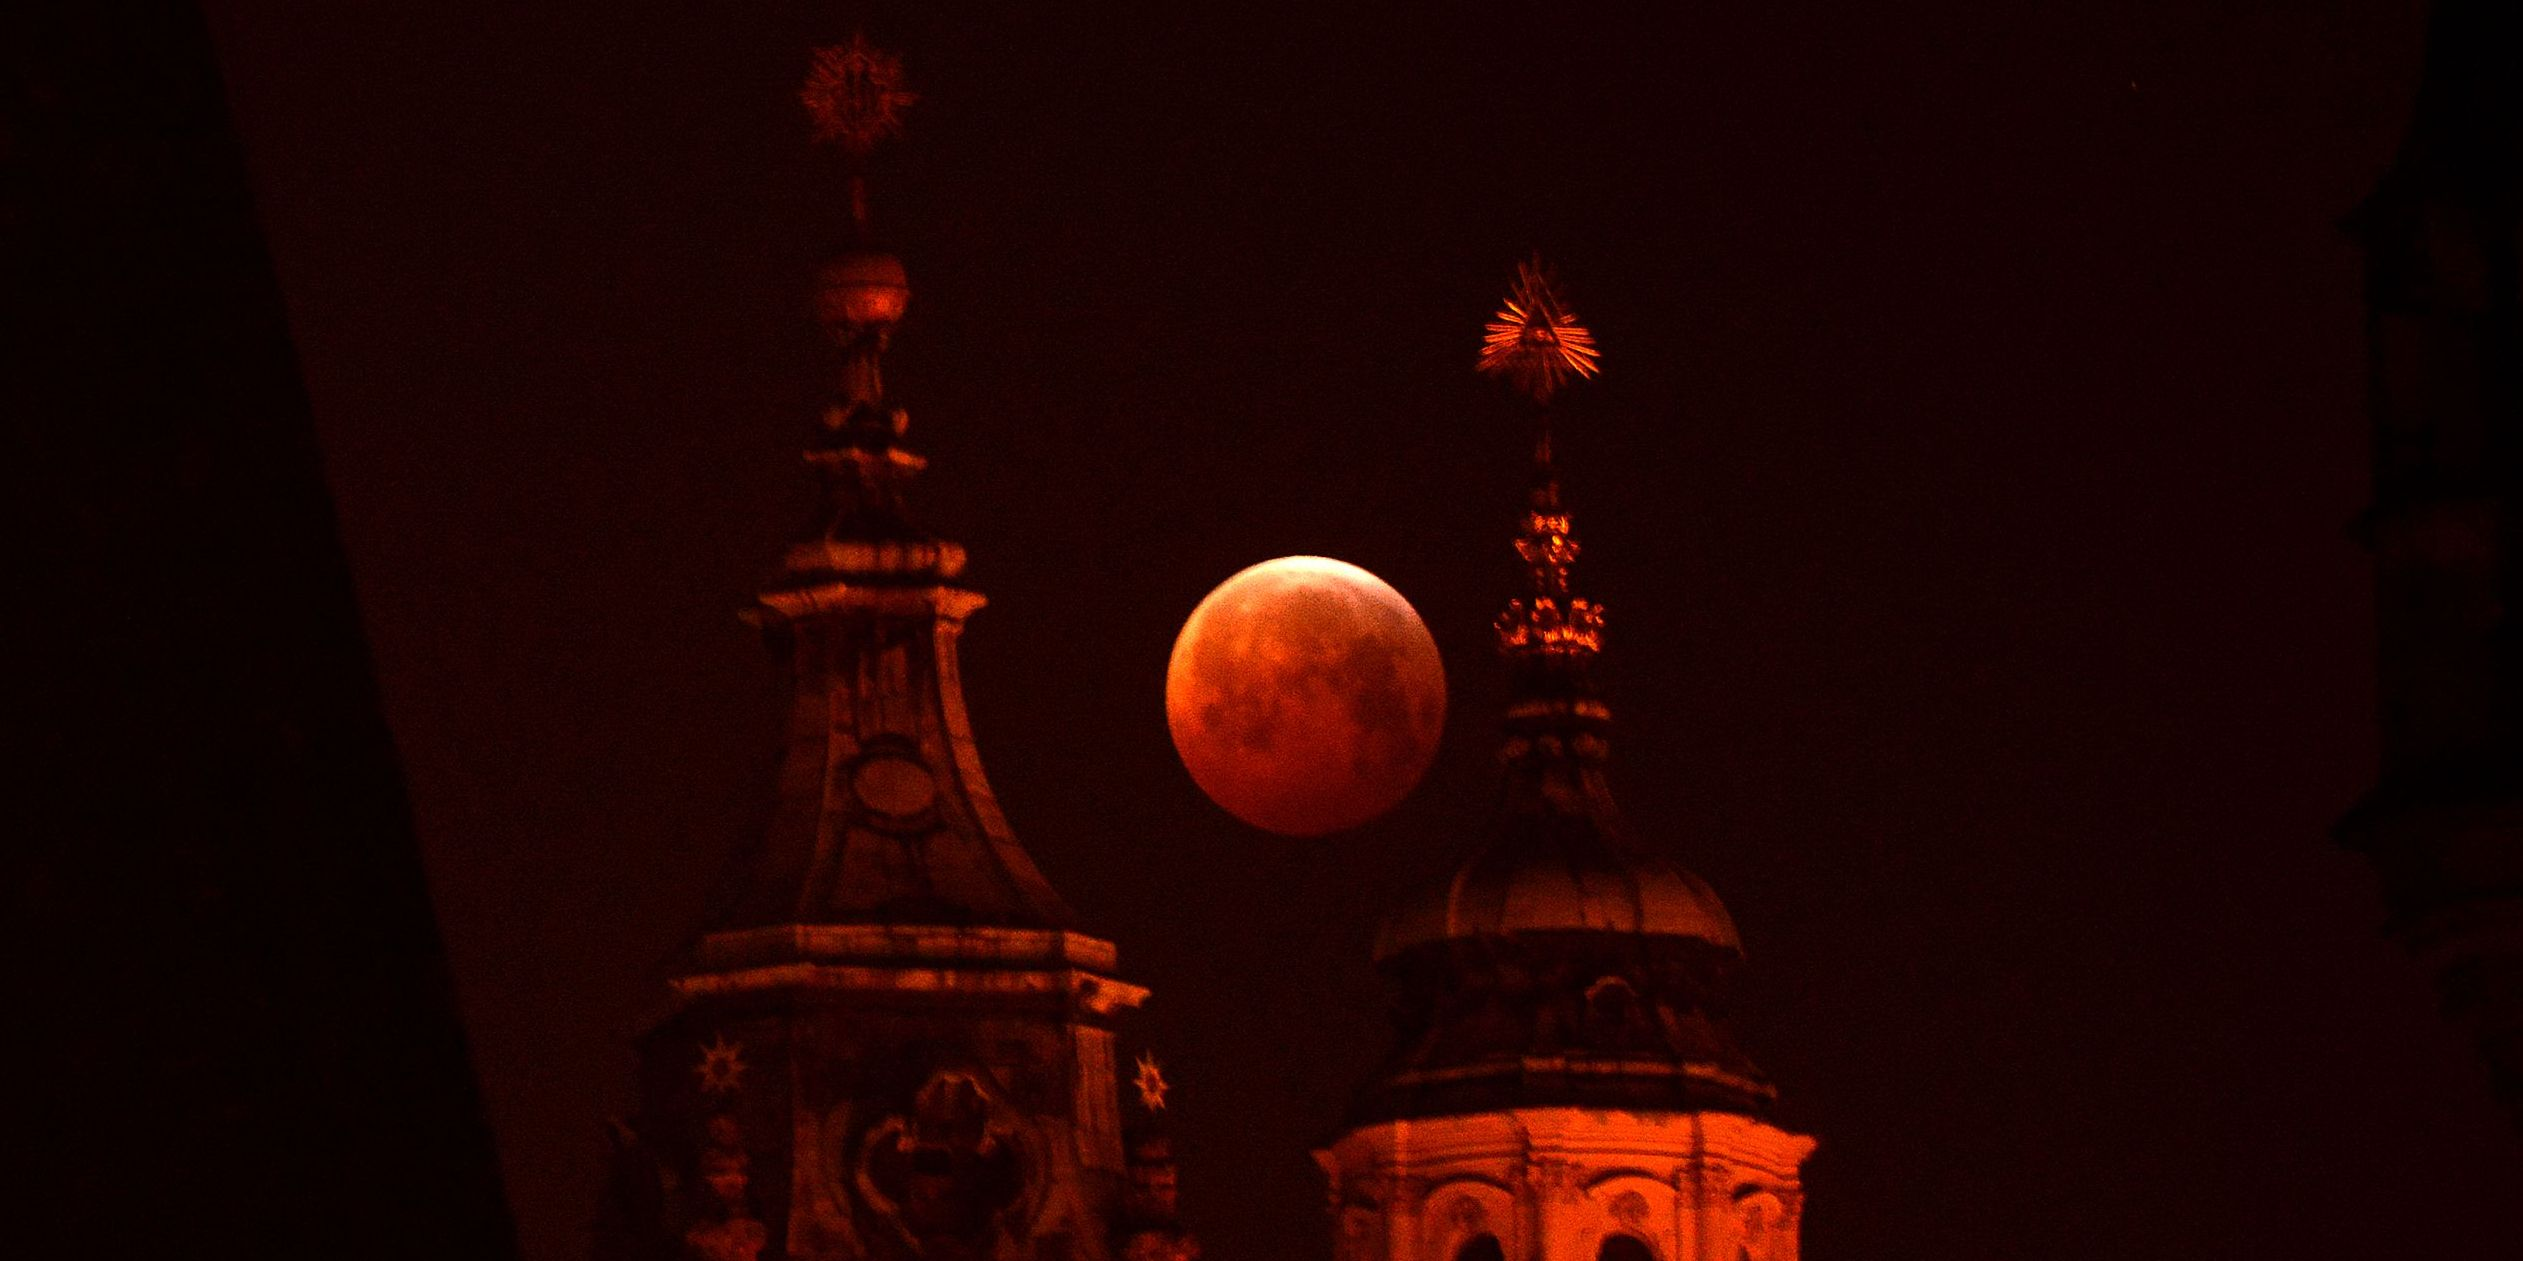 14 incredible pictures of last night's Super Blood Wolf Moon Eclipse